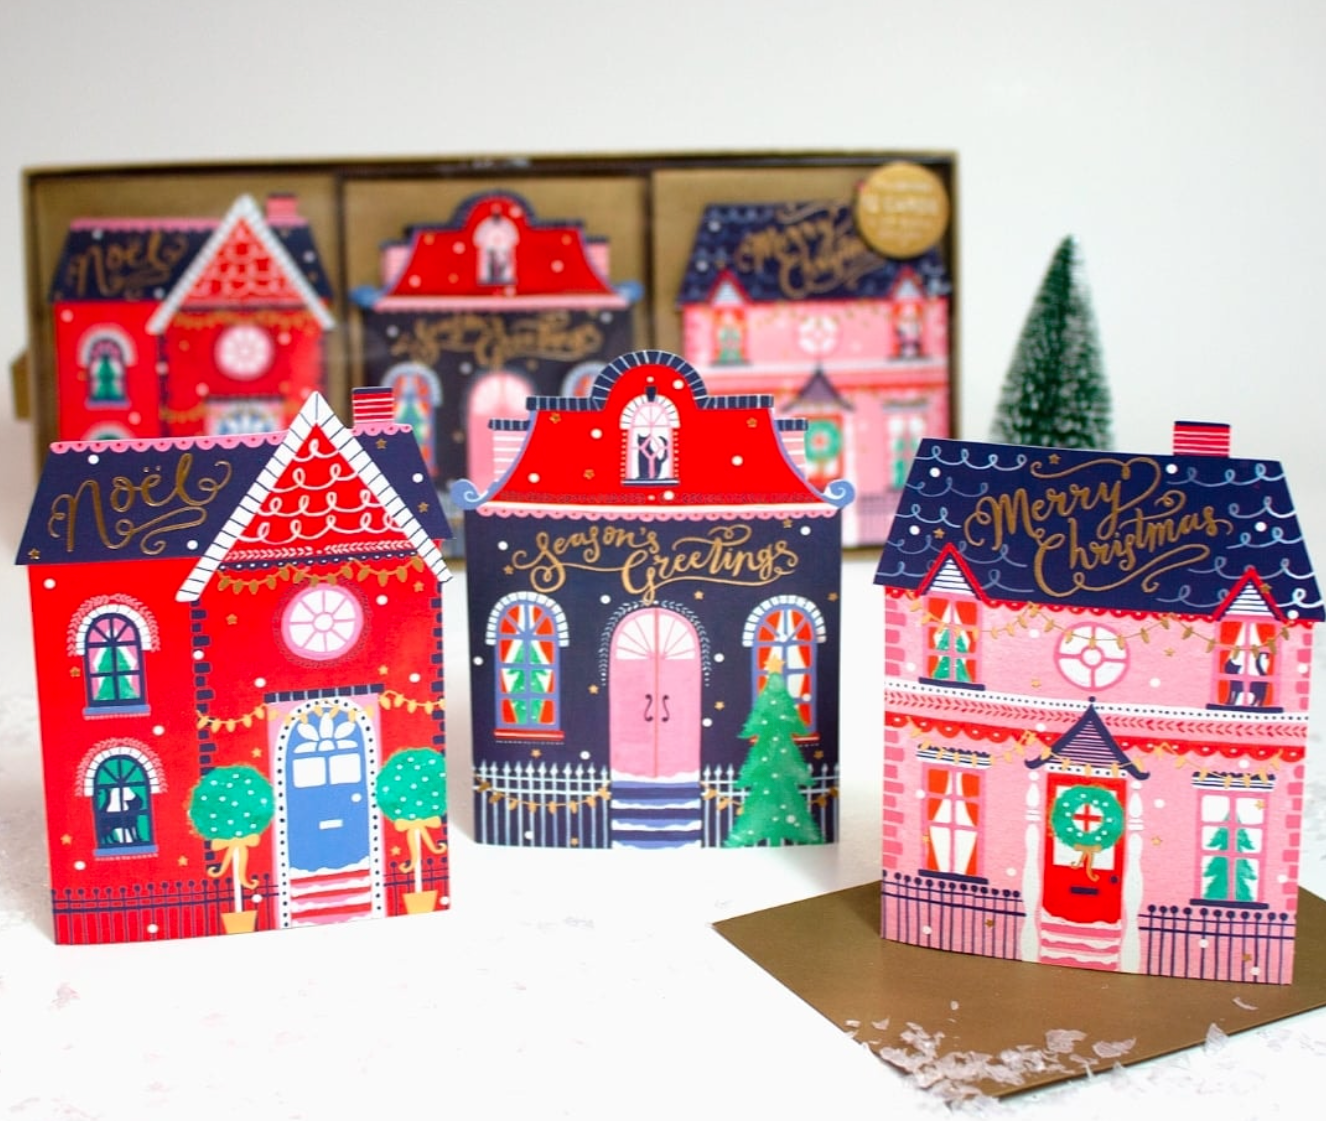 Above: The Indigo Tree actively promoted its Christmas card selection (including these from The Art File) sold in its stores as well as on its website.